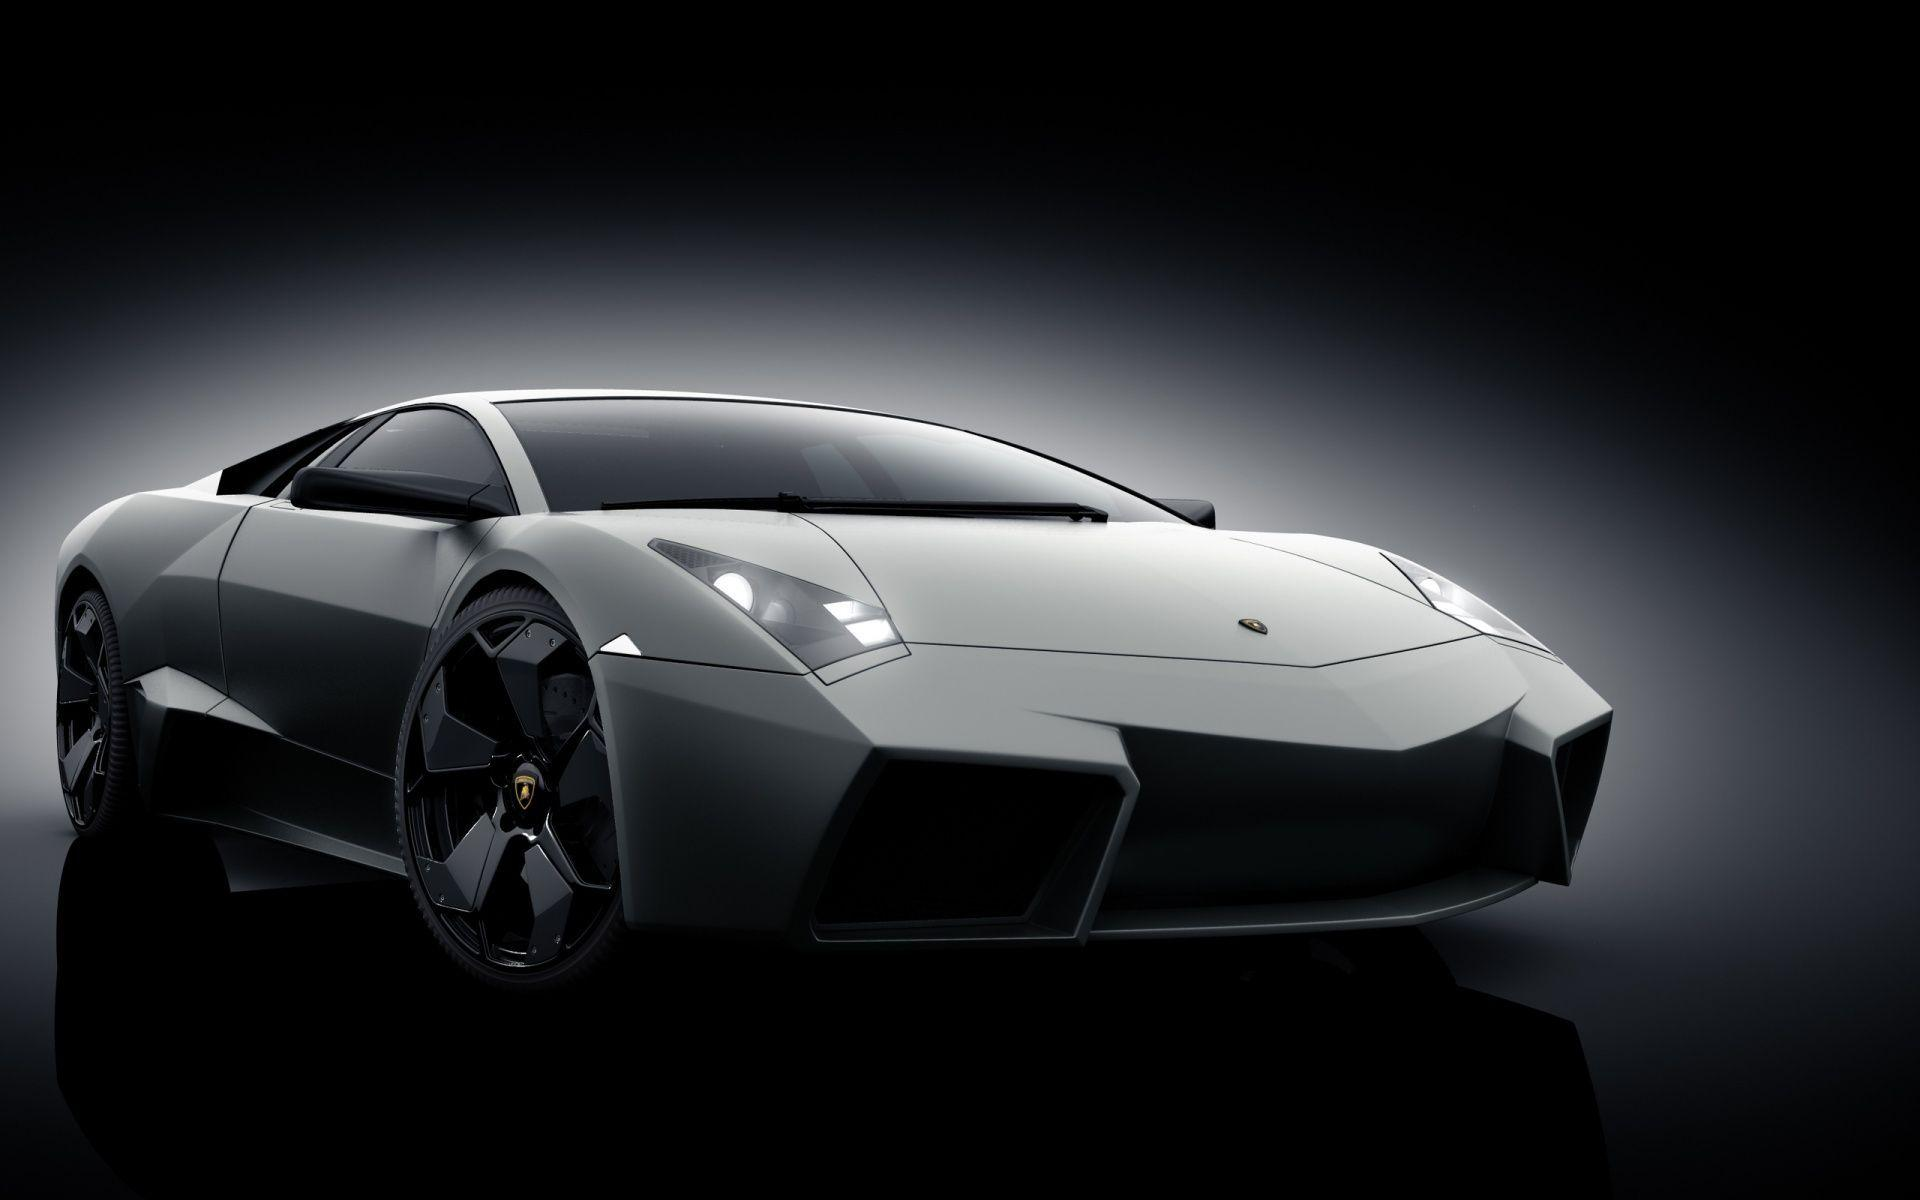 lamborghini reventon image wallpaper - photo #12